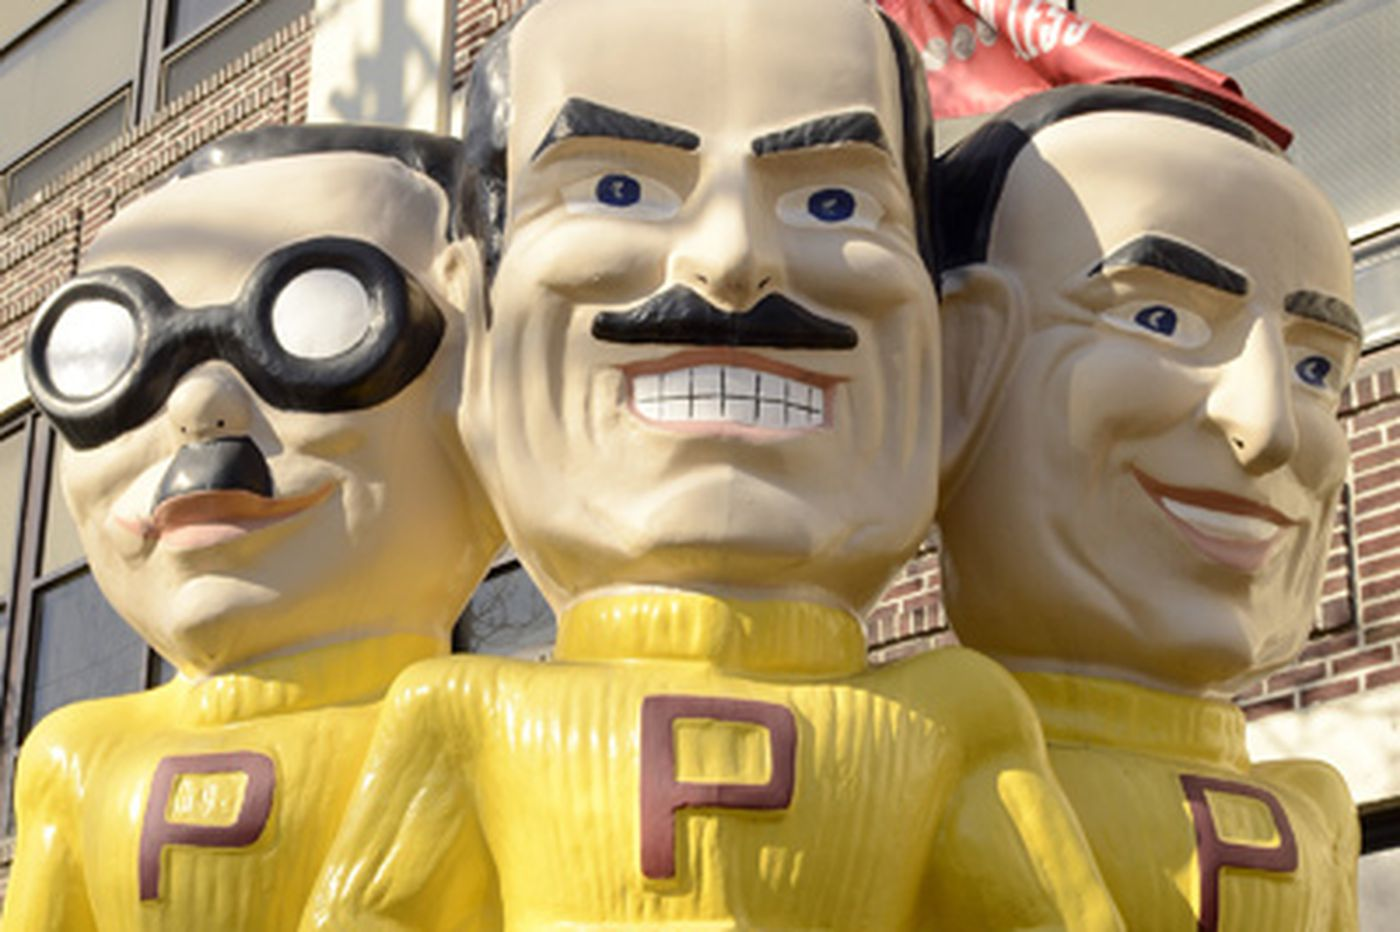 Pep Boys says its merger is at risk